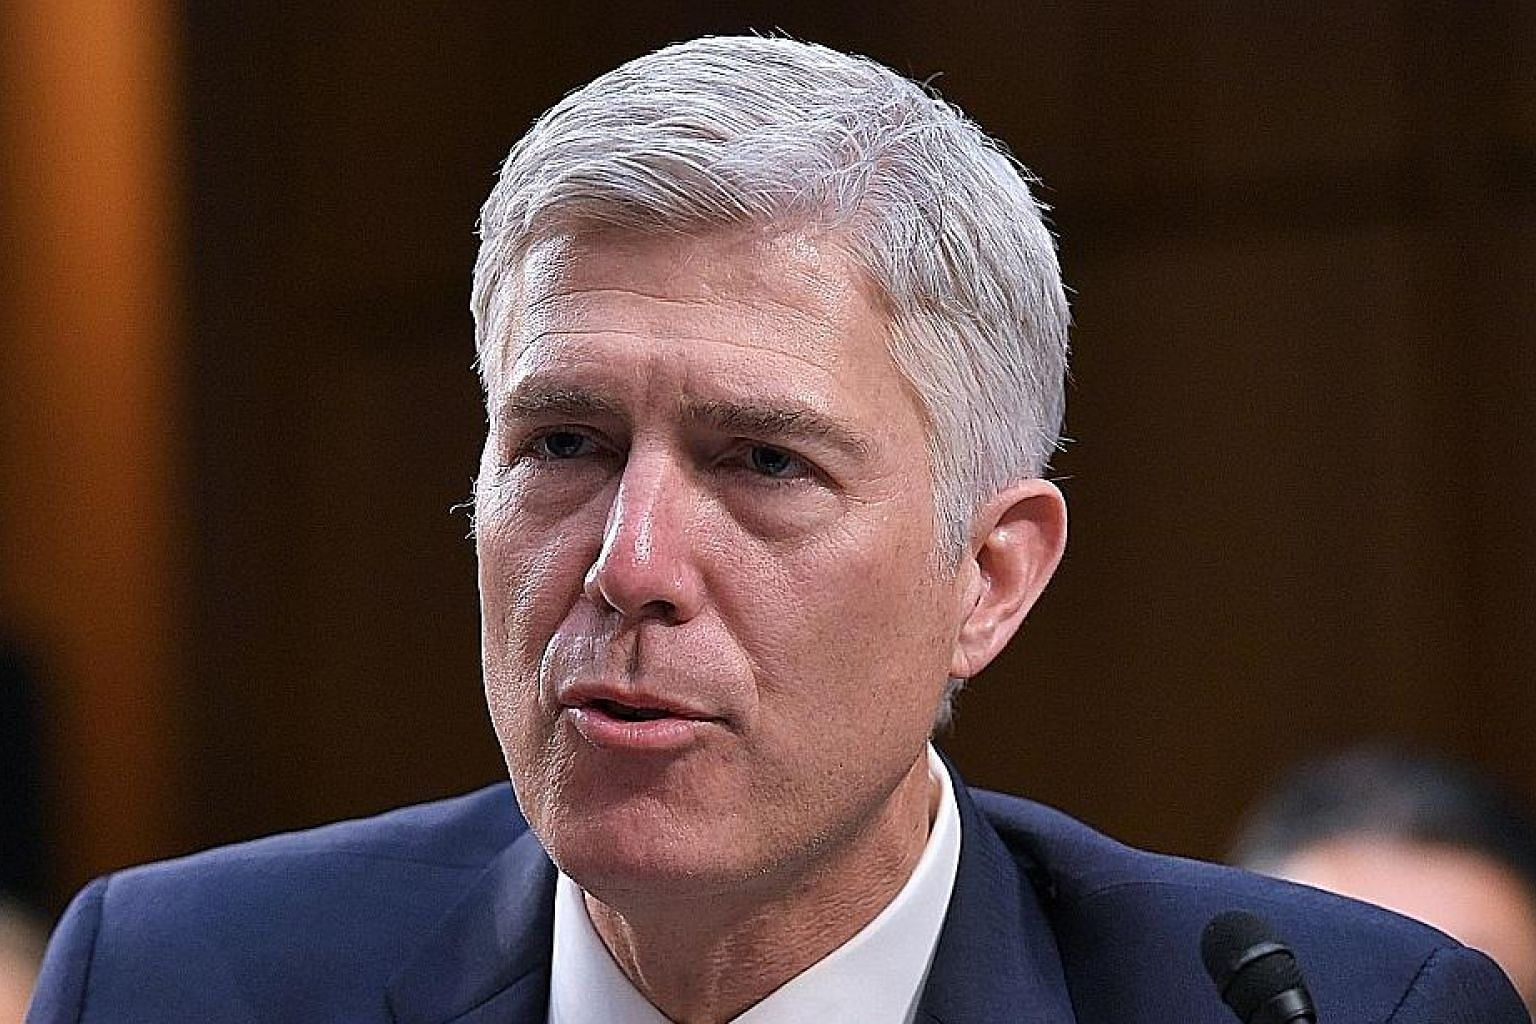 There is a bid to block Judge Neil Gorsuch's confirmation vote via a filibuster.